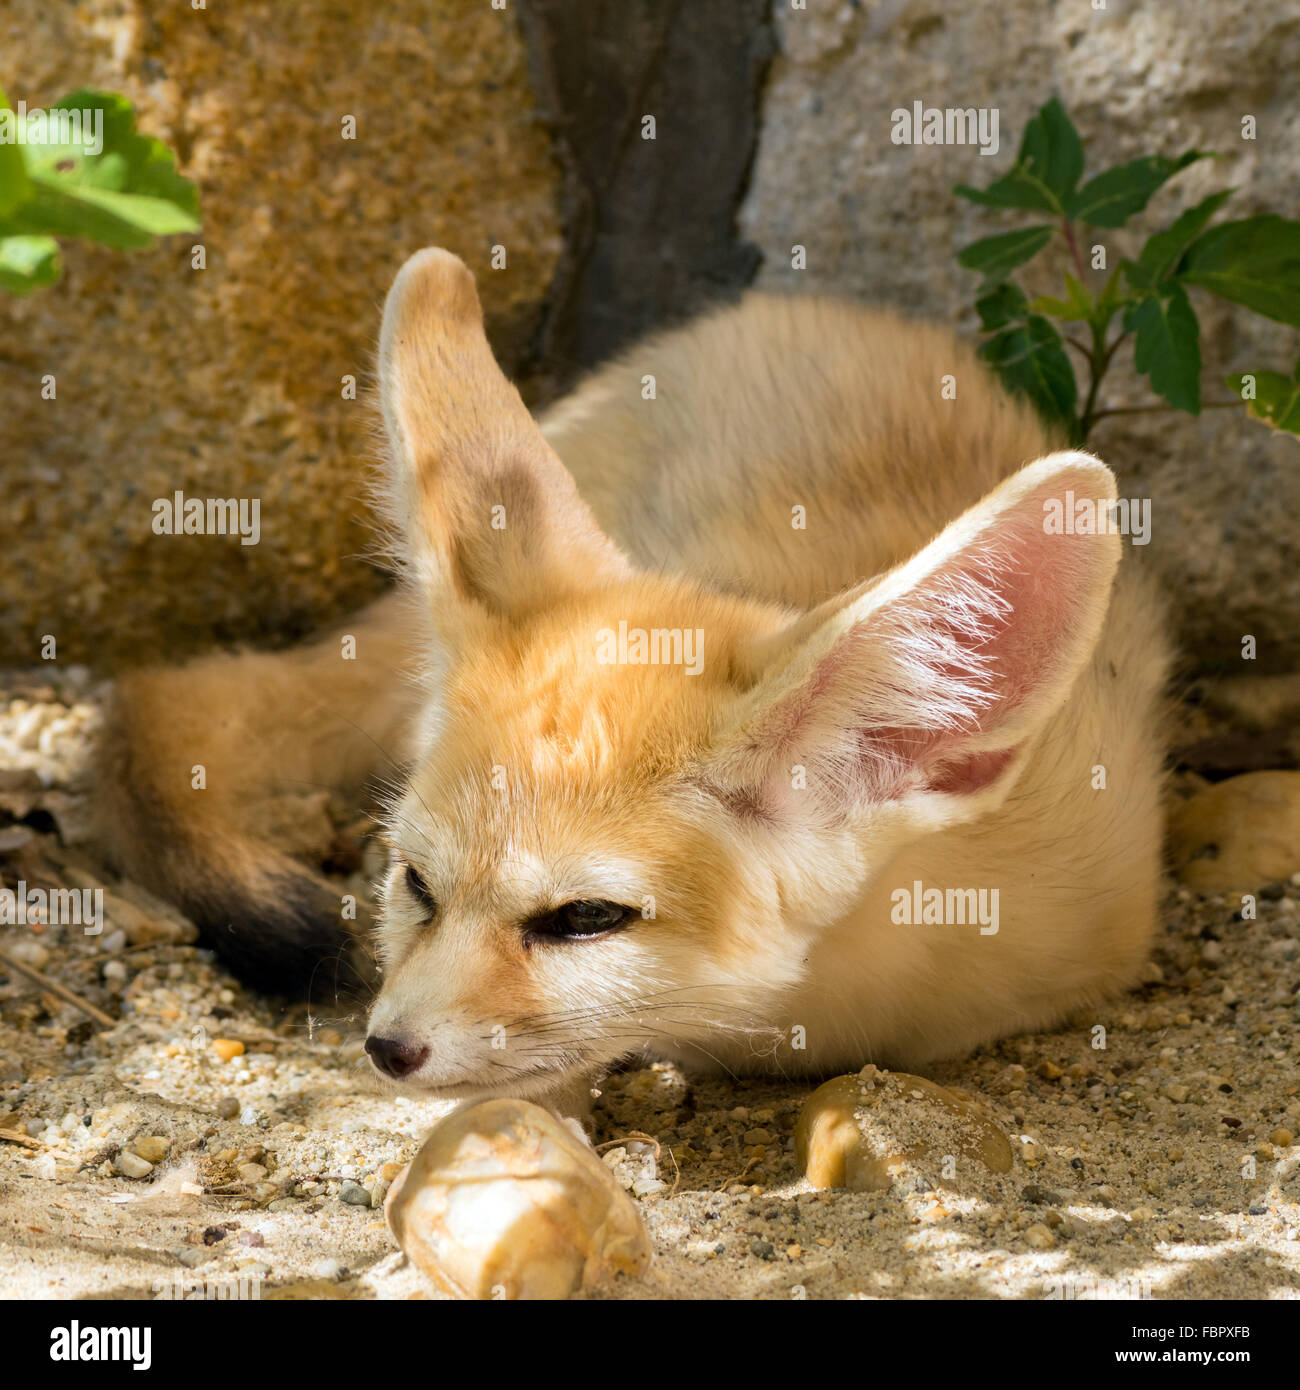 Fennec fox (Vulpes zerda) with a cunning smile - Stock Image